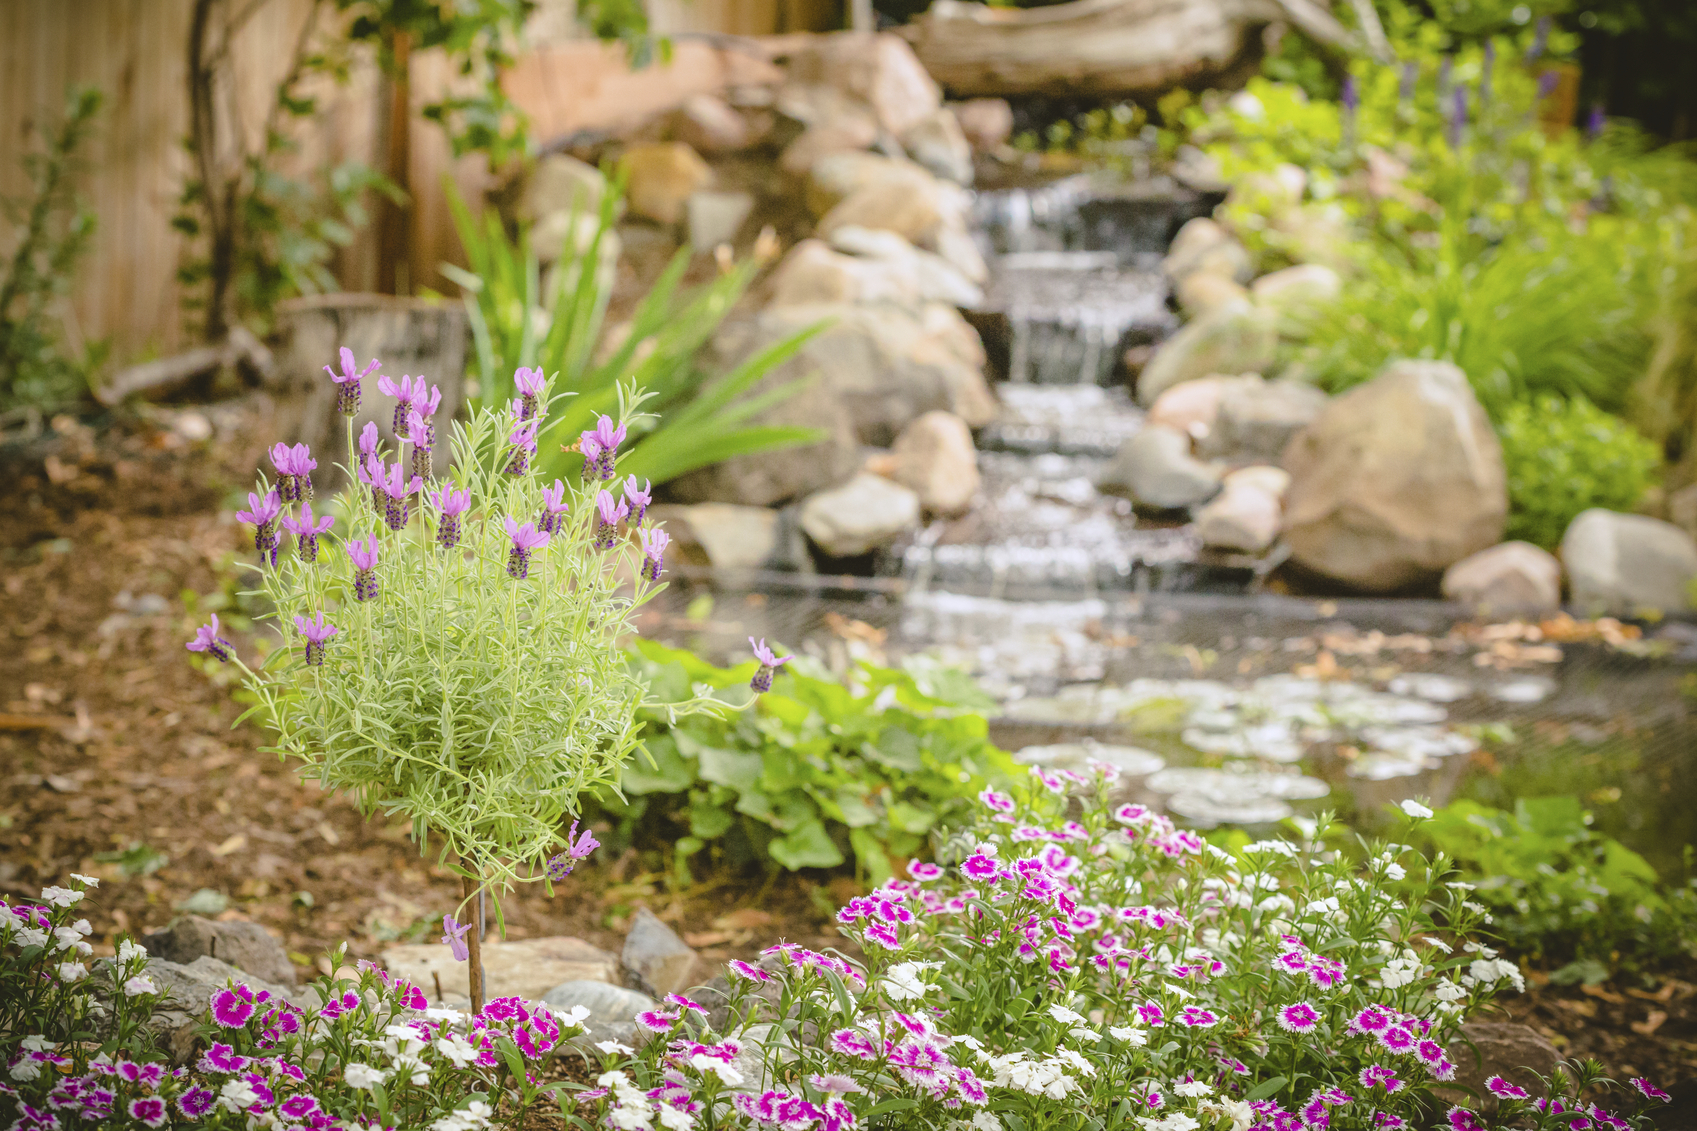 Lavender and dianthus in the back yard flower garden with a small pond and waterfall in the background. No people in image. High resolution color photograph with horizontal composition.